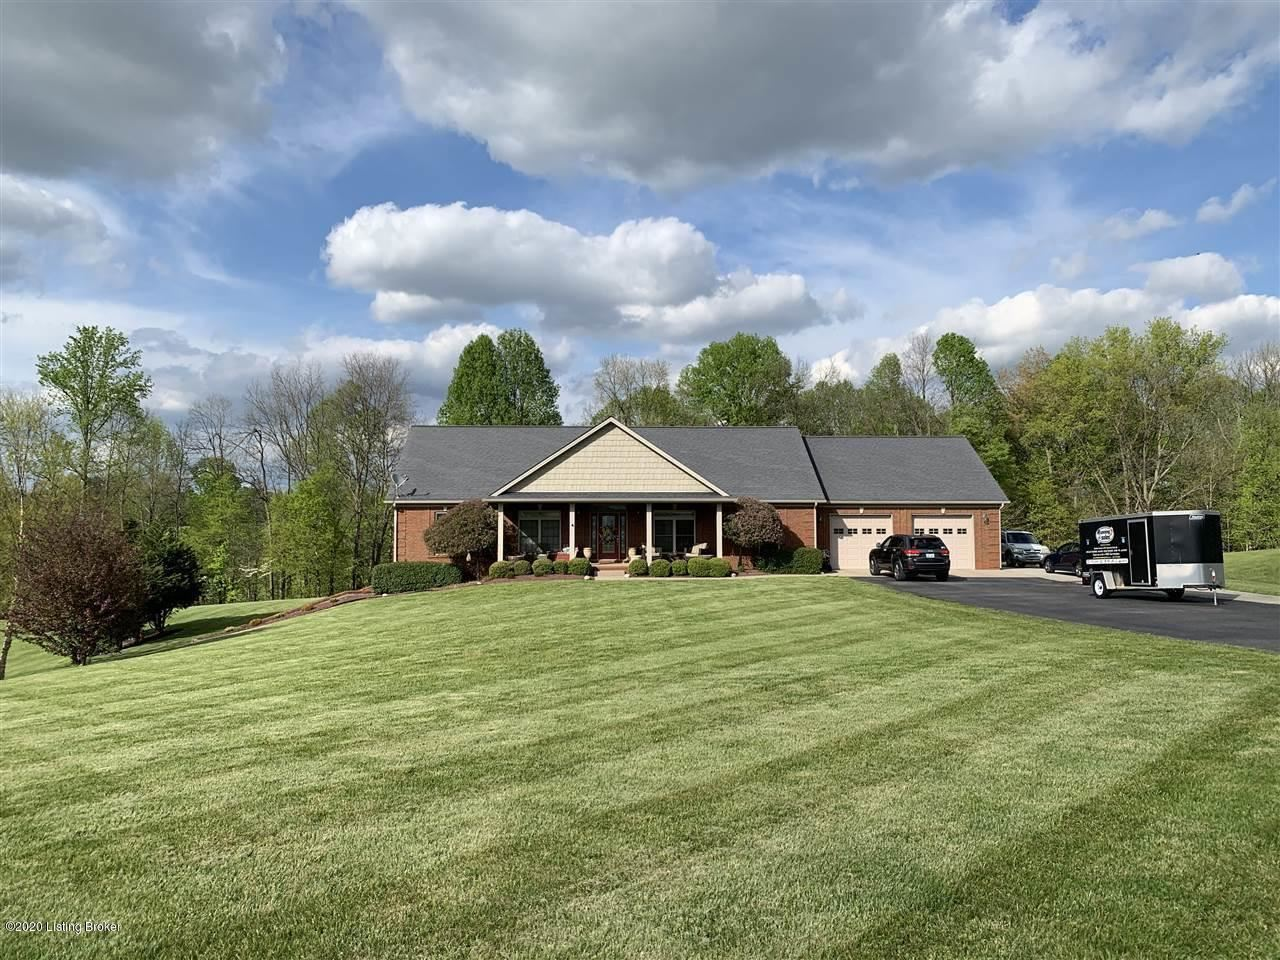 Property Image Of 103 Grace Ct In Rineyville, Ky